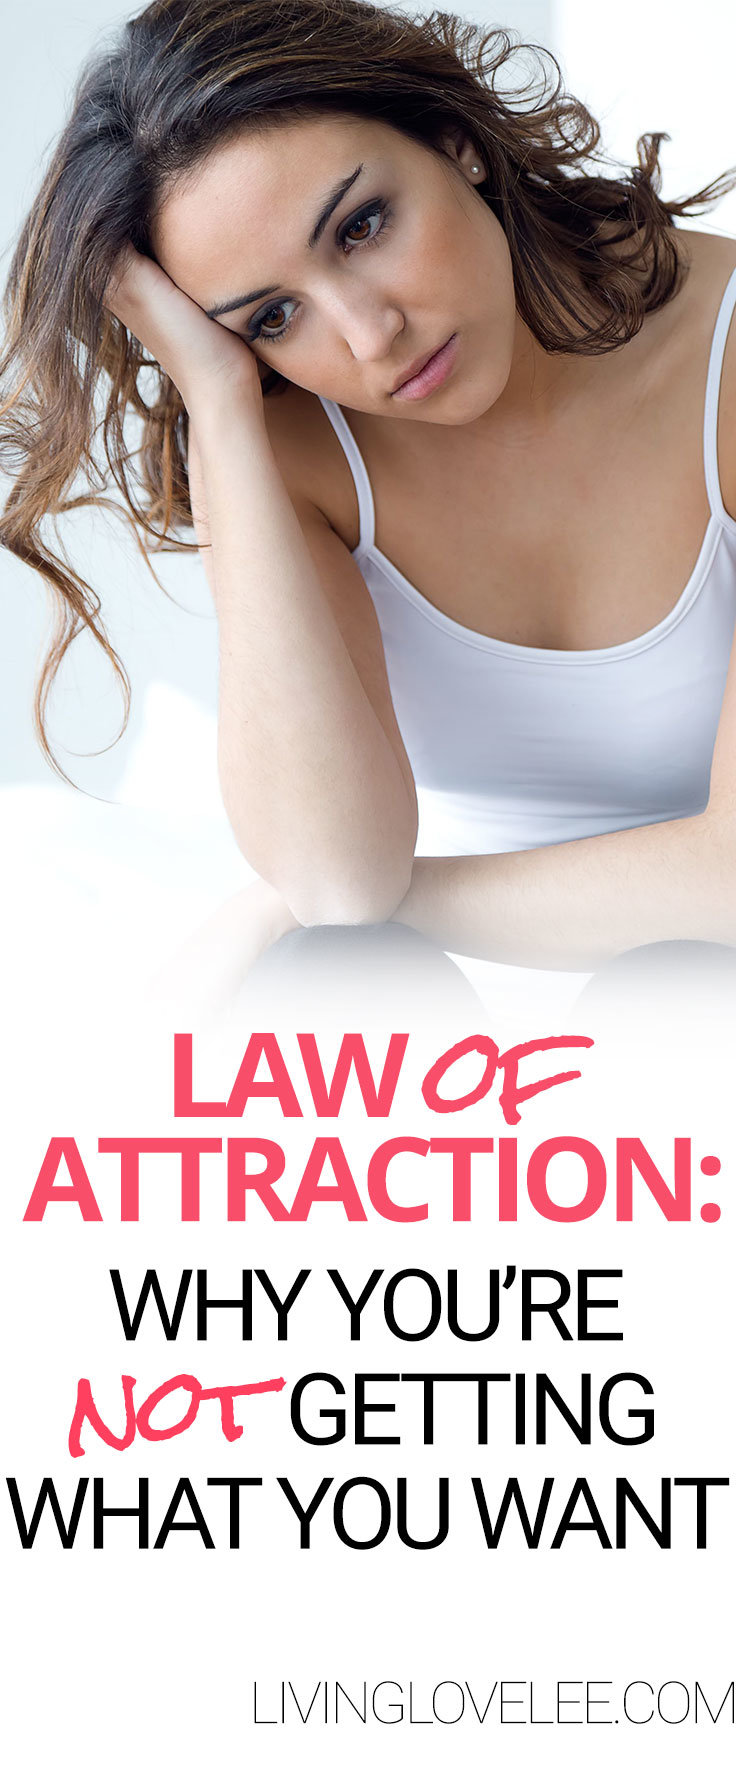 signs law of attraction